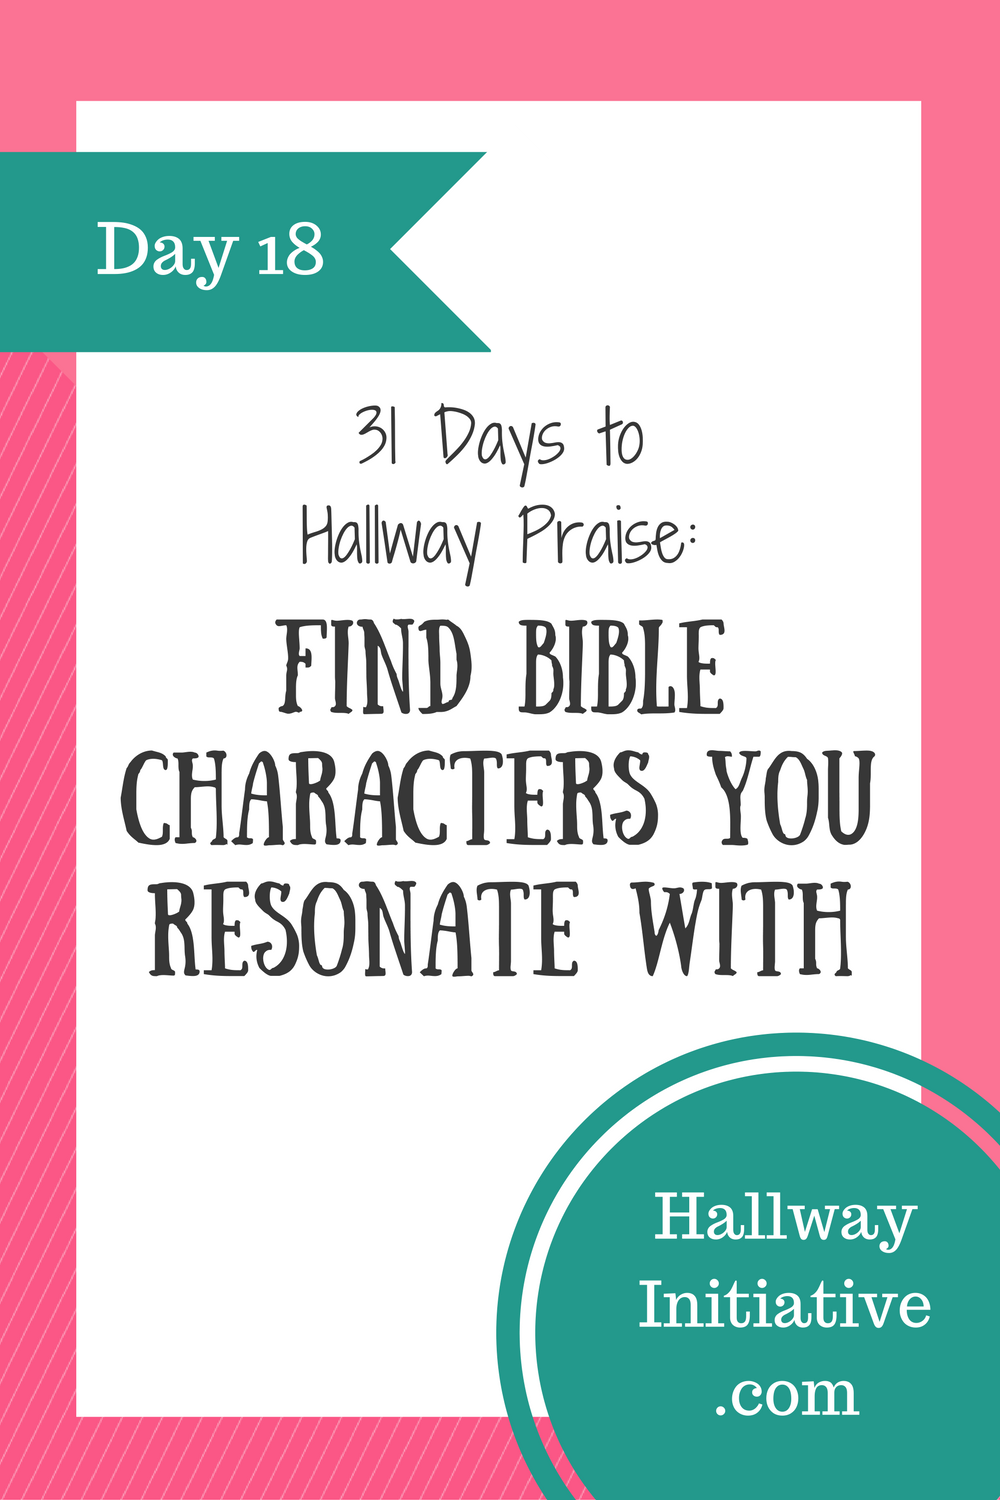 Day 18: find Bible characters you resonate with